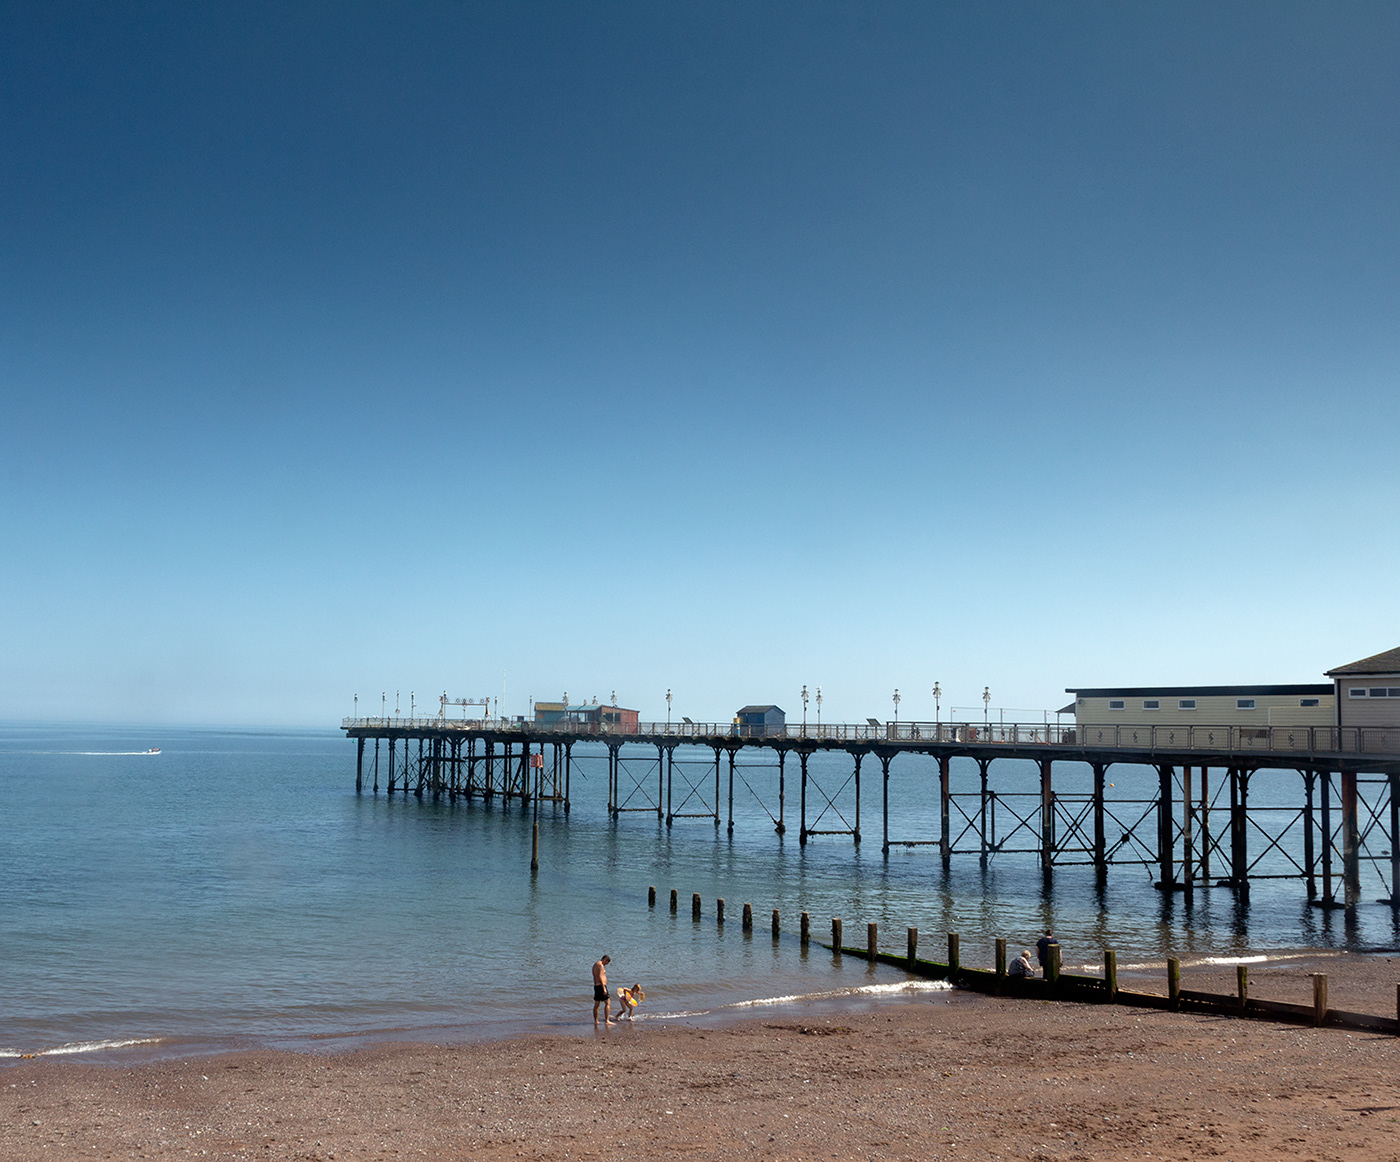 architecture photographer Photography  Seaside piers photographic Project